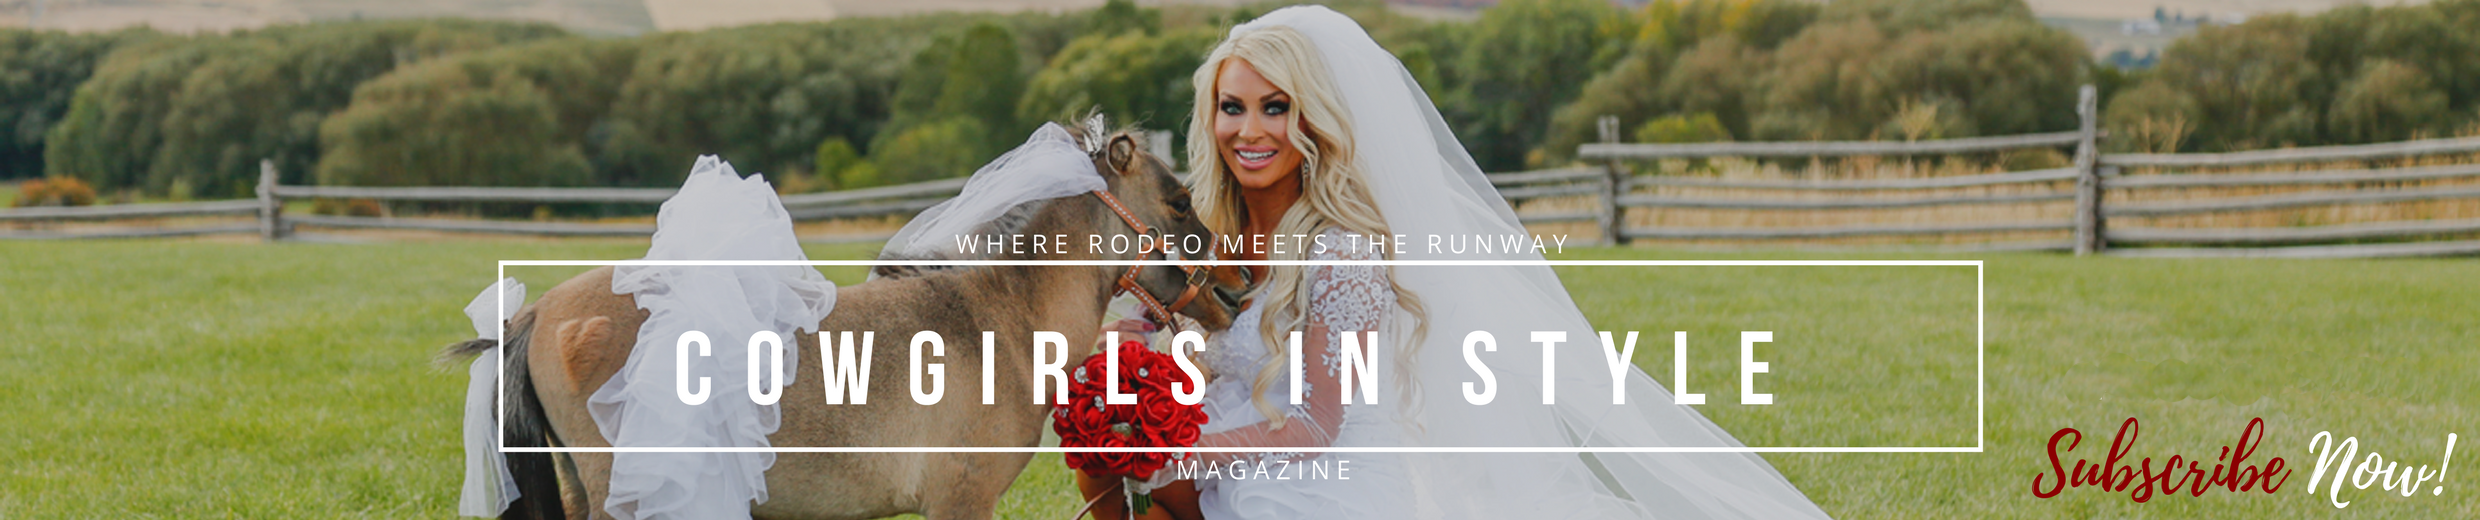 At the NFR? Don't Miss Out On These Activities! - Cowgirls In Style Magazine